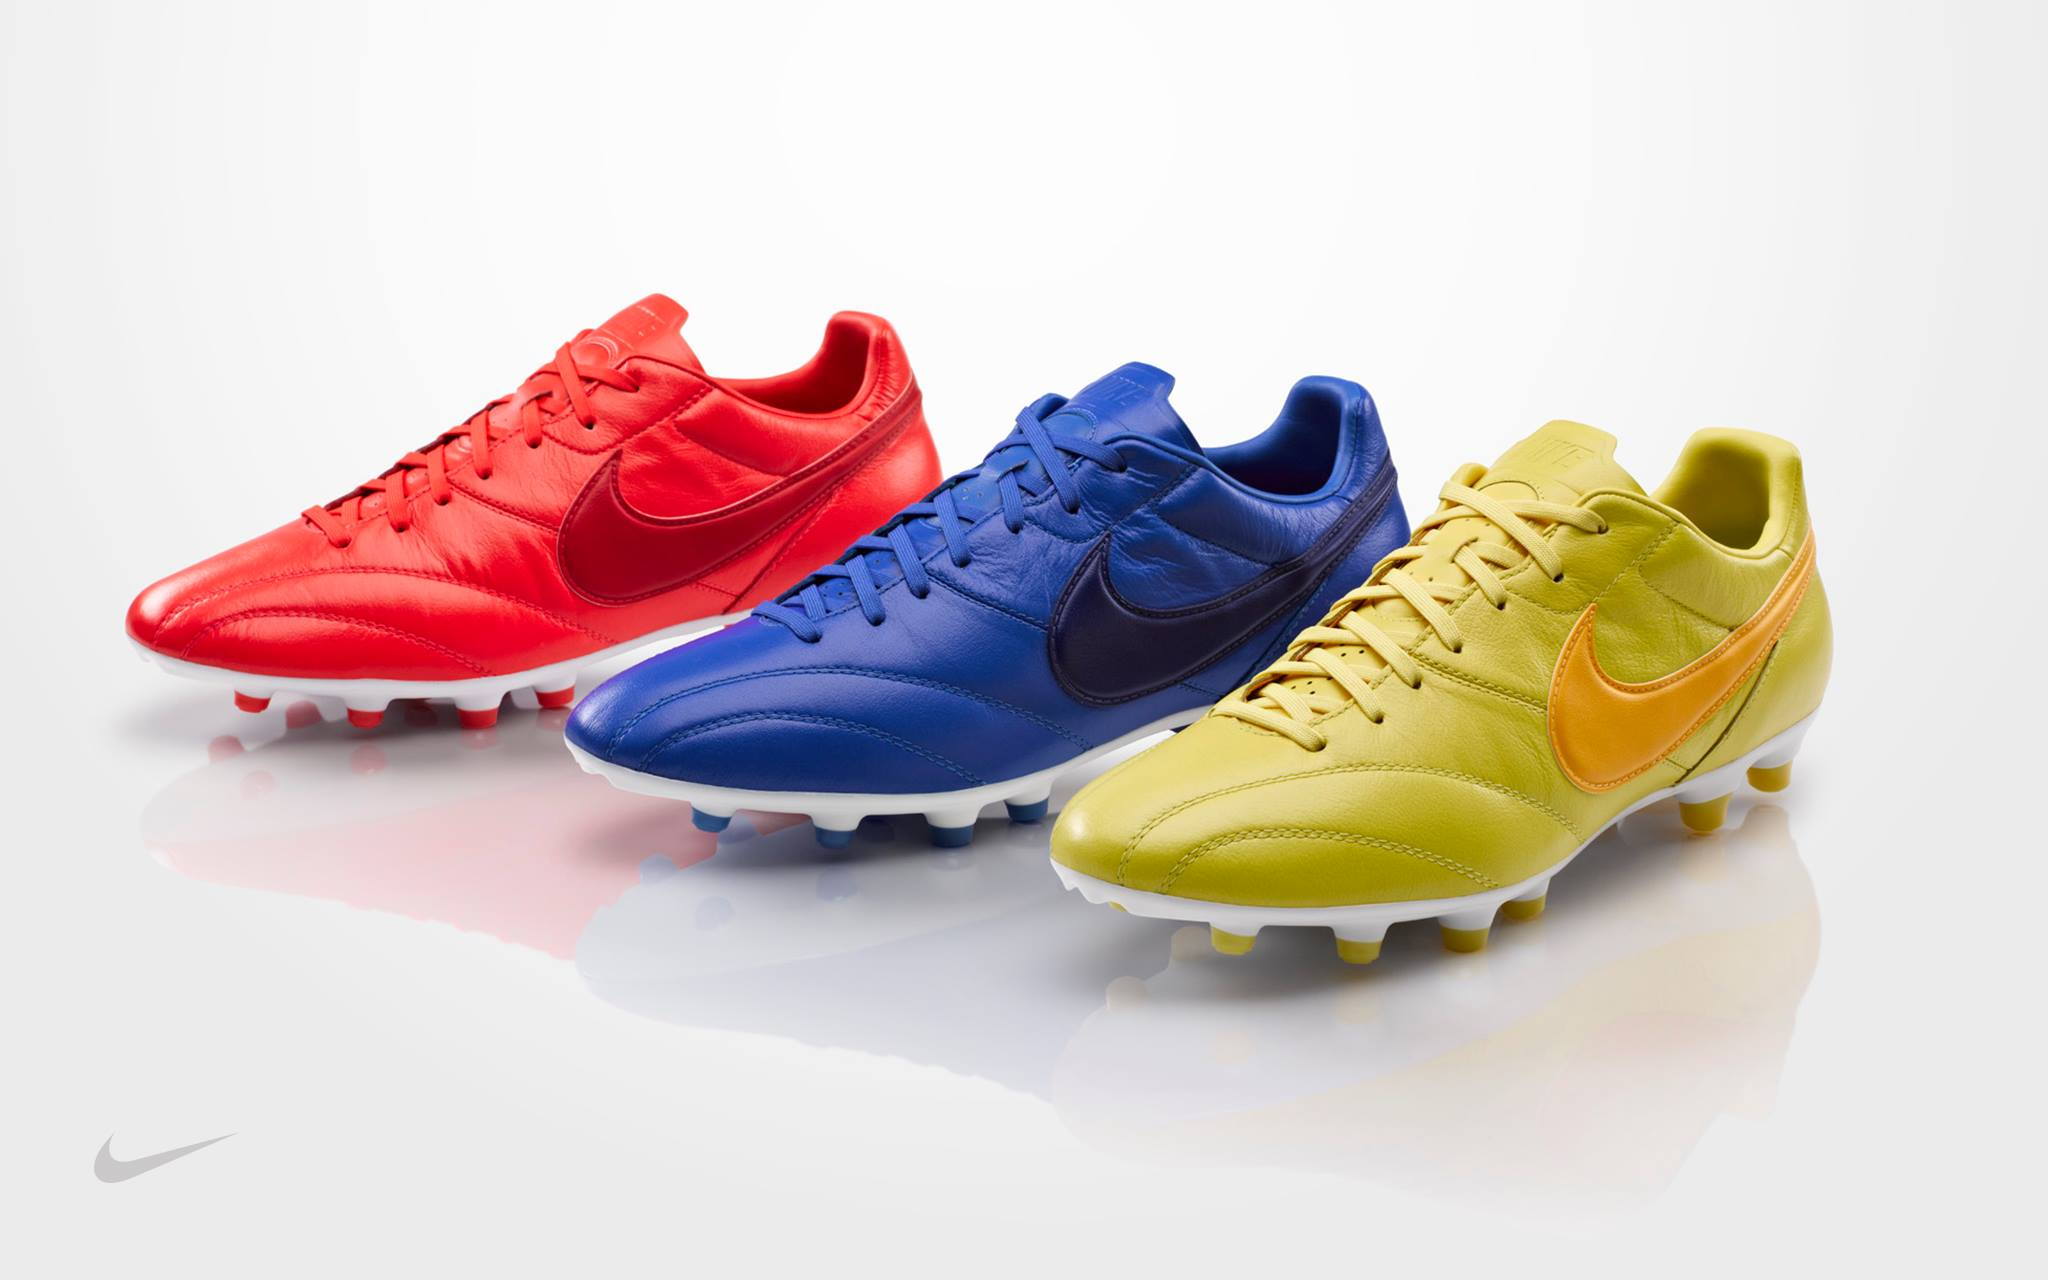 Nike Premier Limited Edition